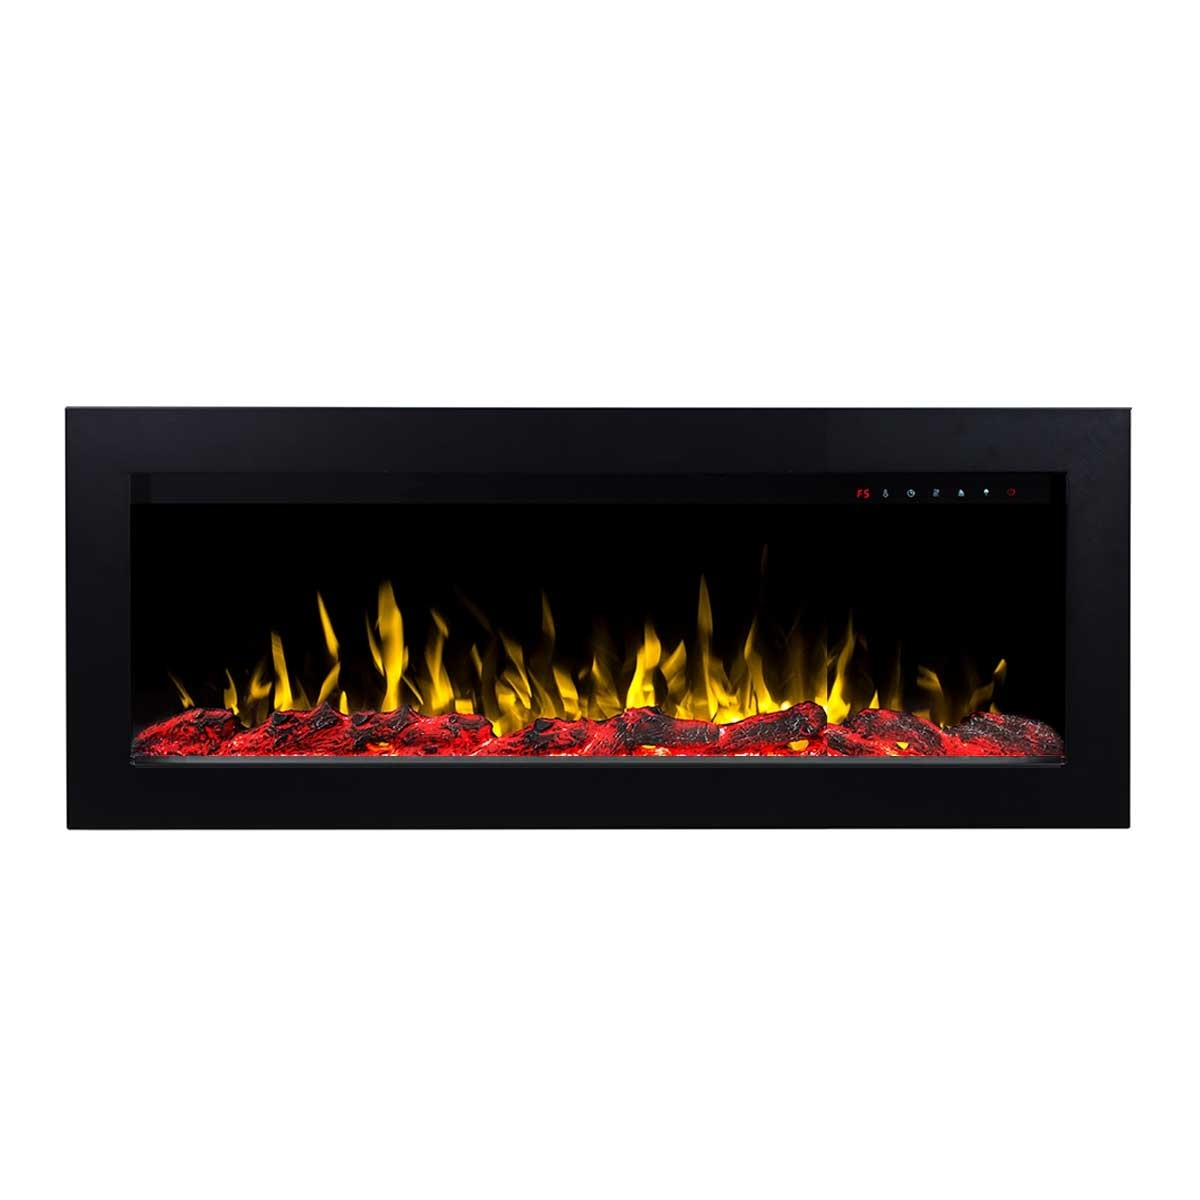 Sonata 1500W 45 inch Built-in Recessed Electric Fireplace